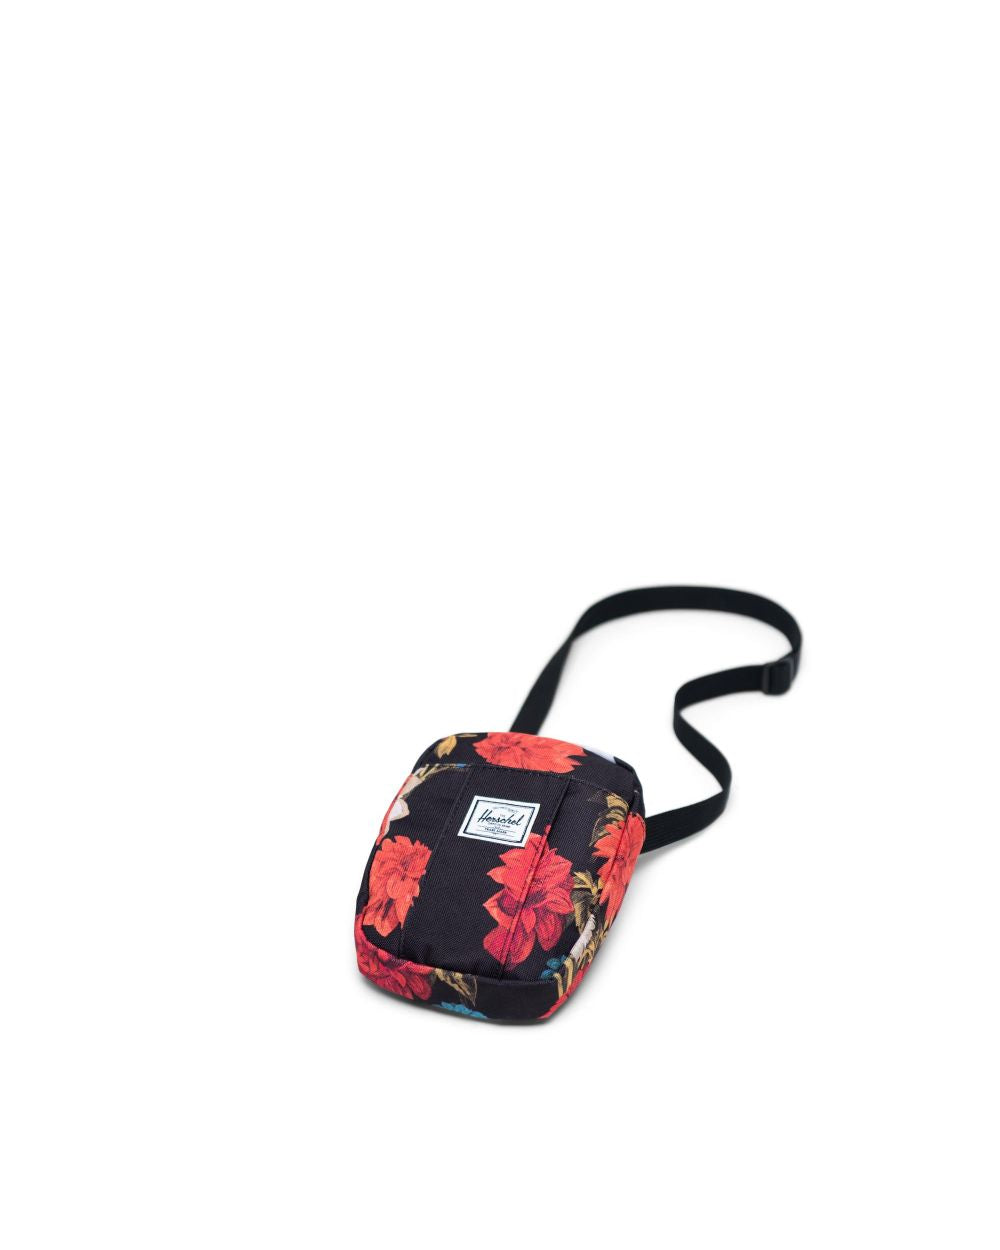 CRUZ CROSSBODY - VINTAGE FLORAL BLACK